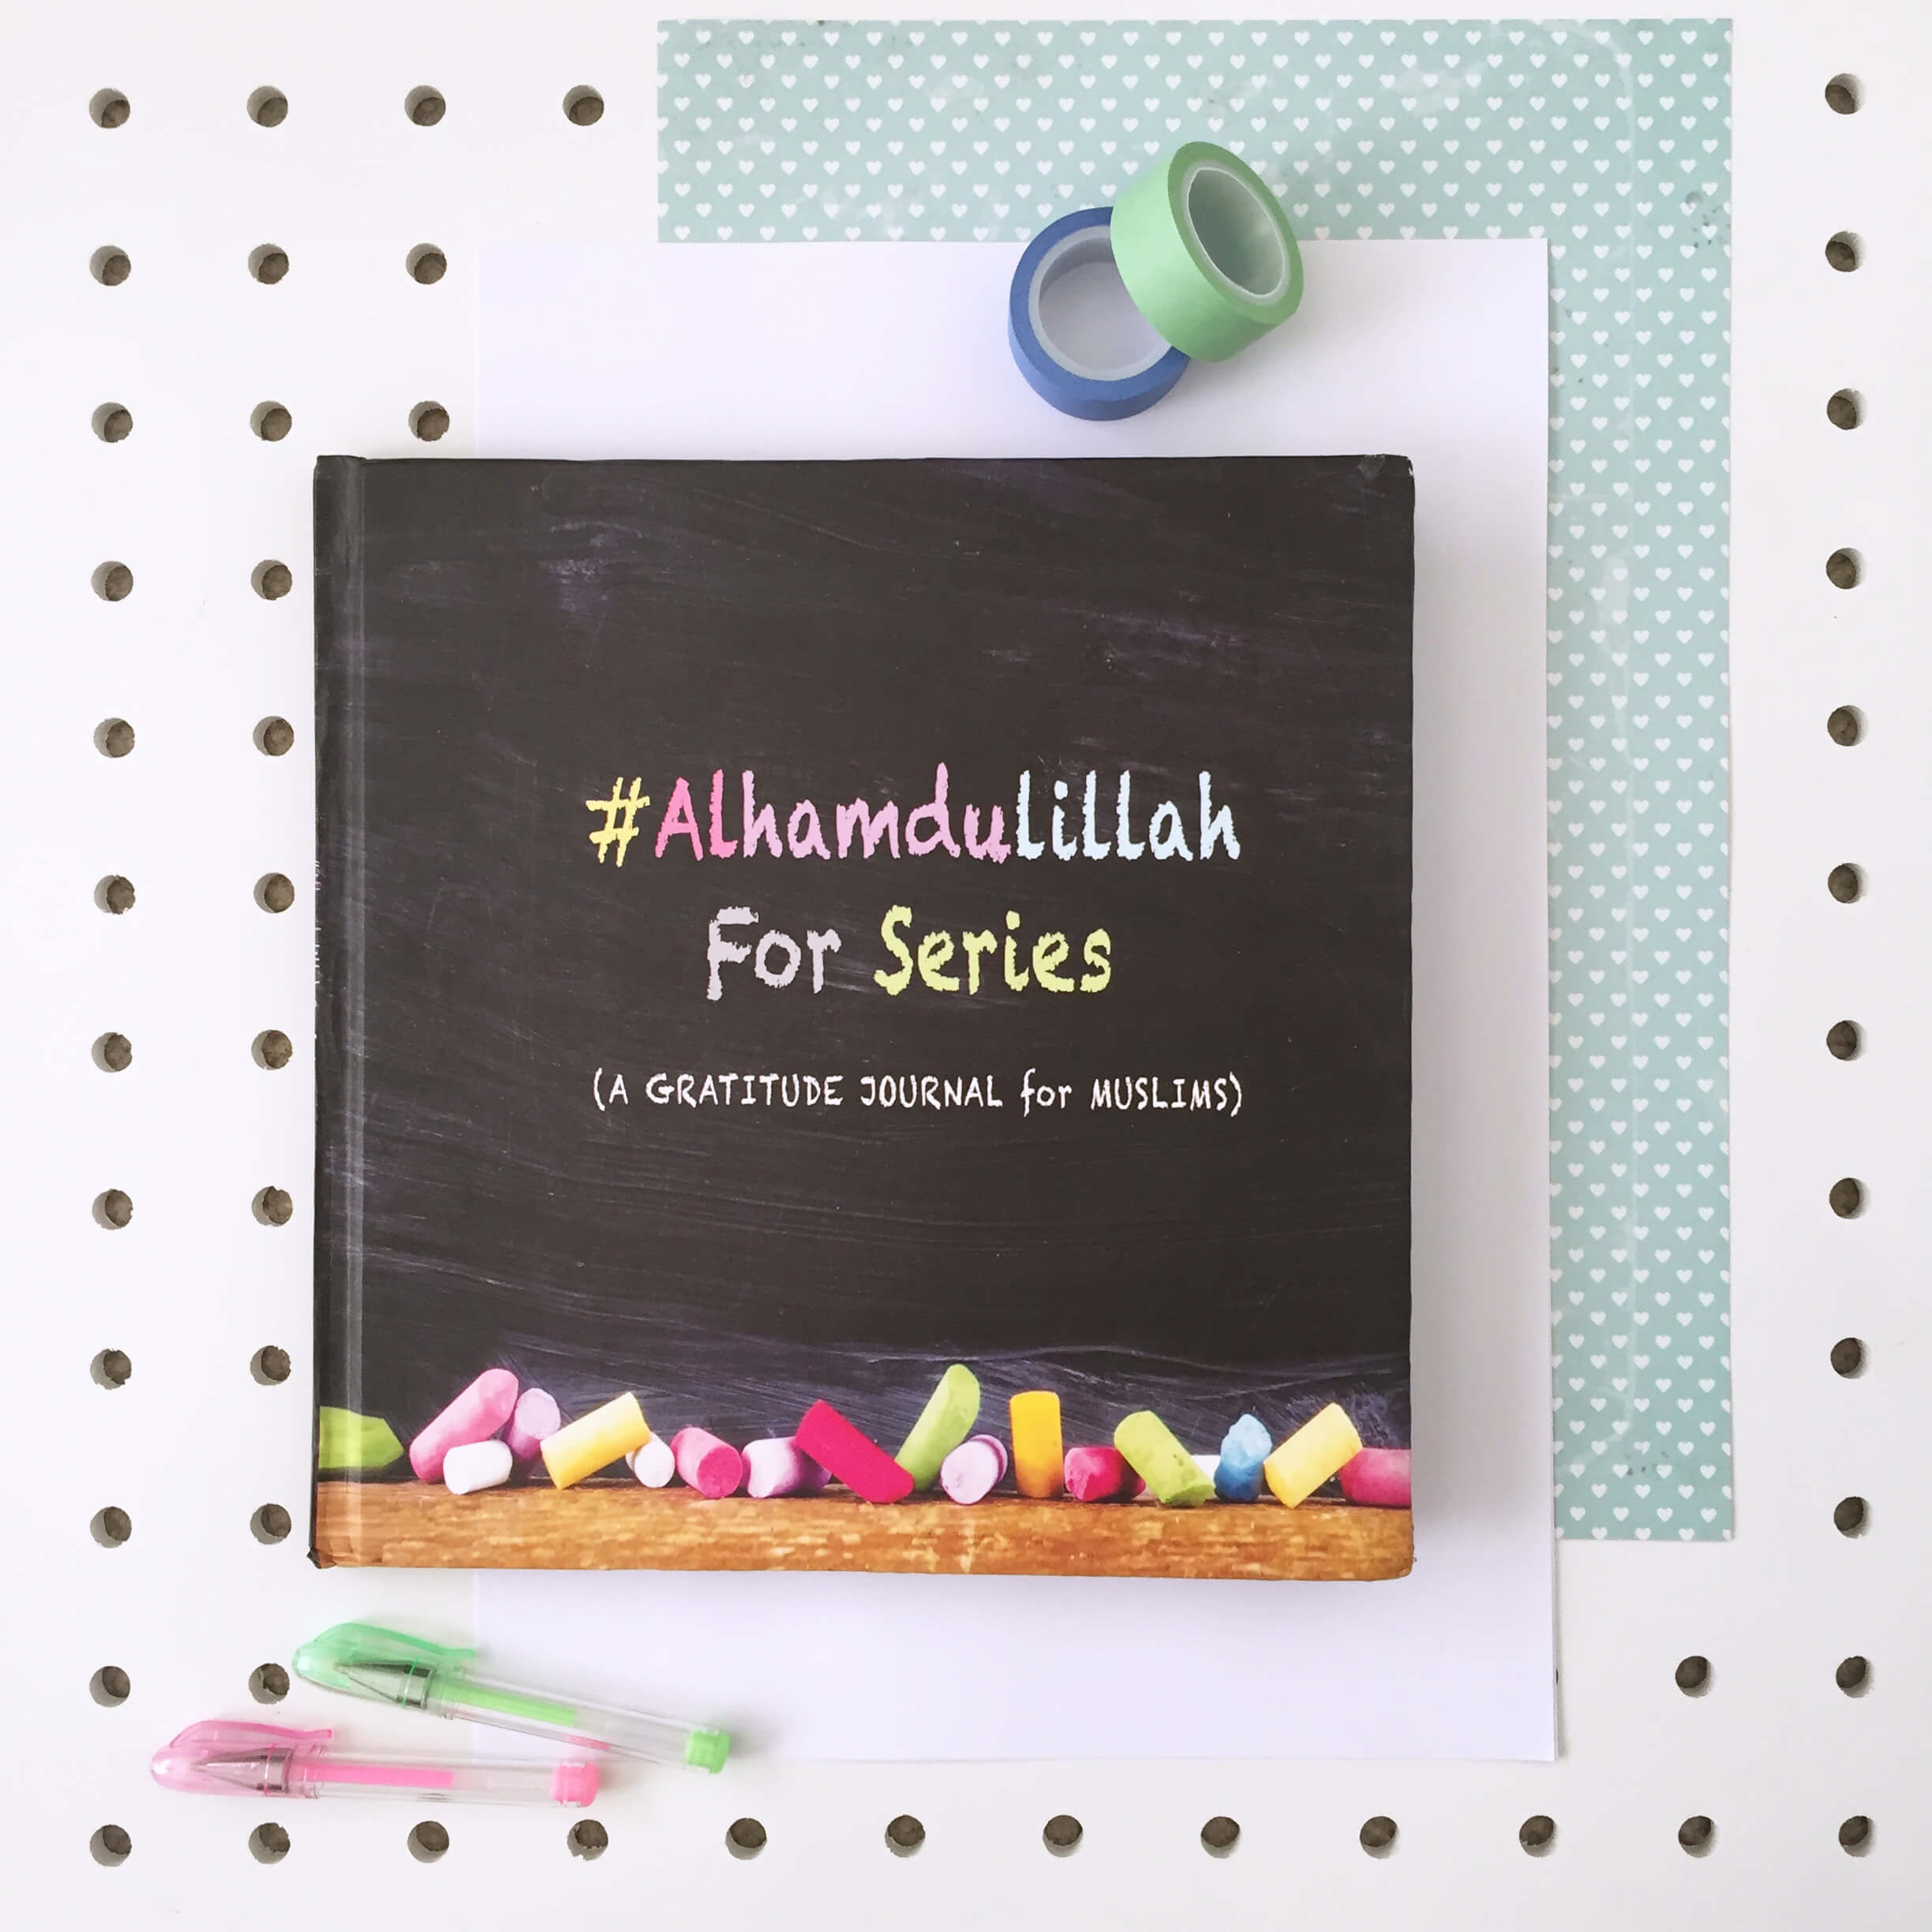 Alhamdulillah for Series Cover